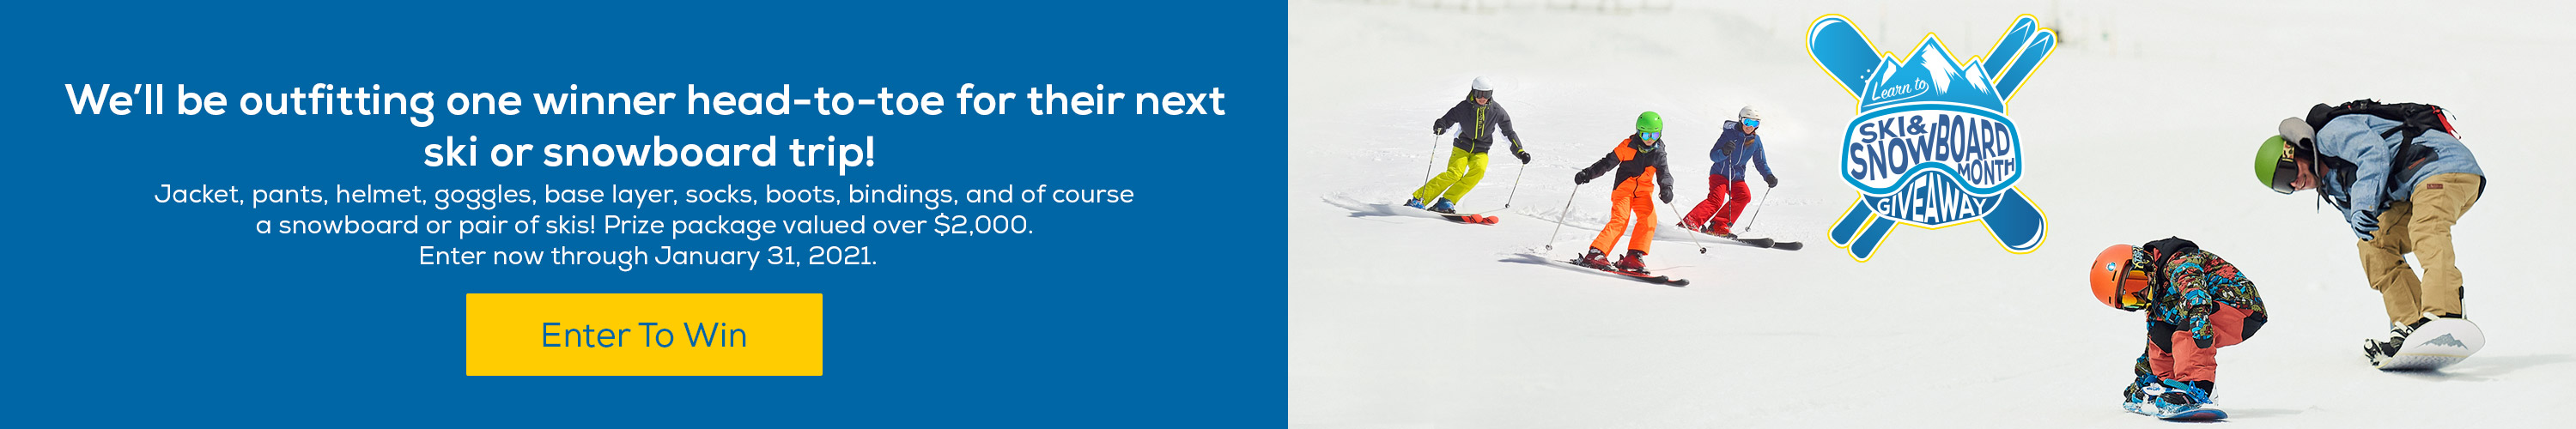 National Learn to Ski Snowboard Month - Enter to Win